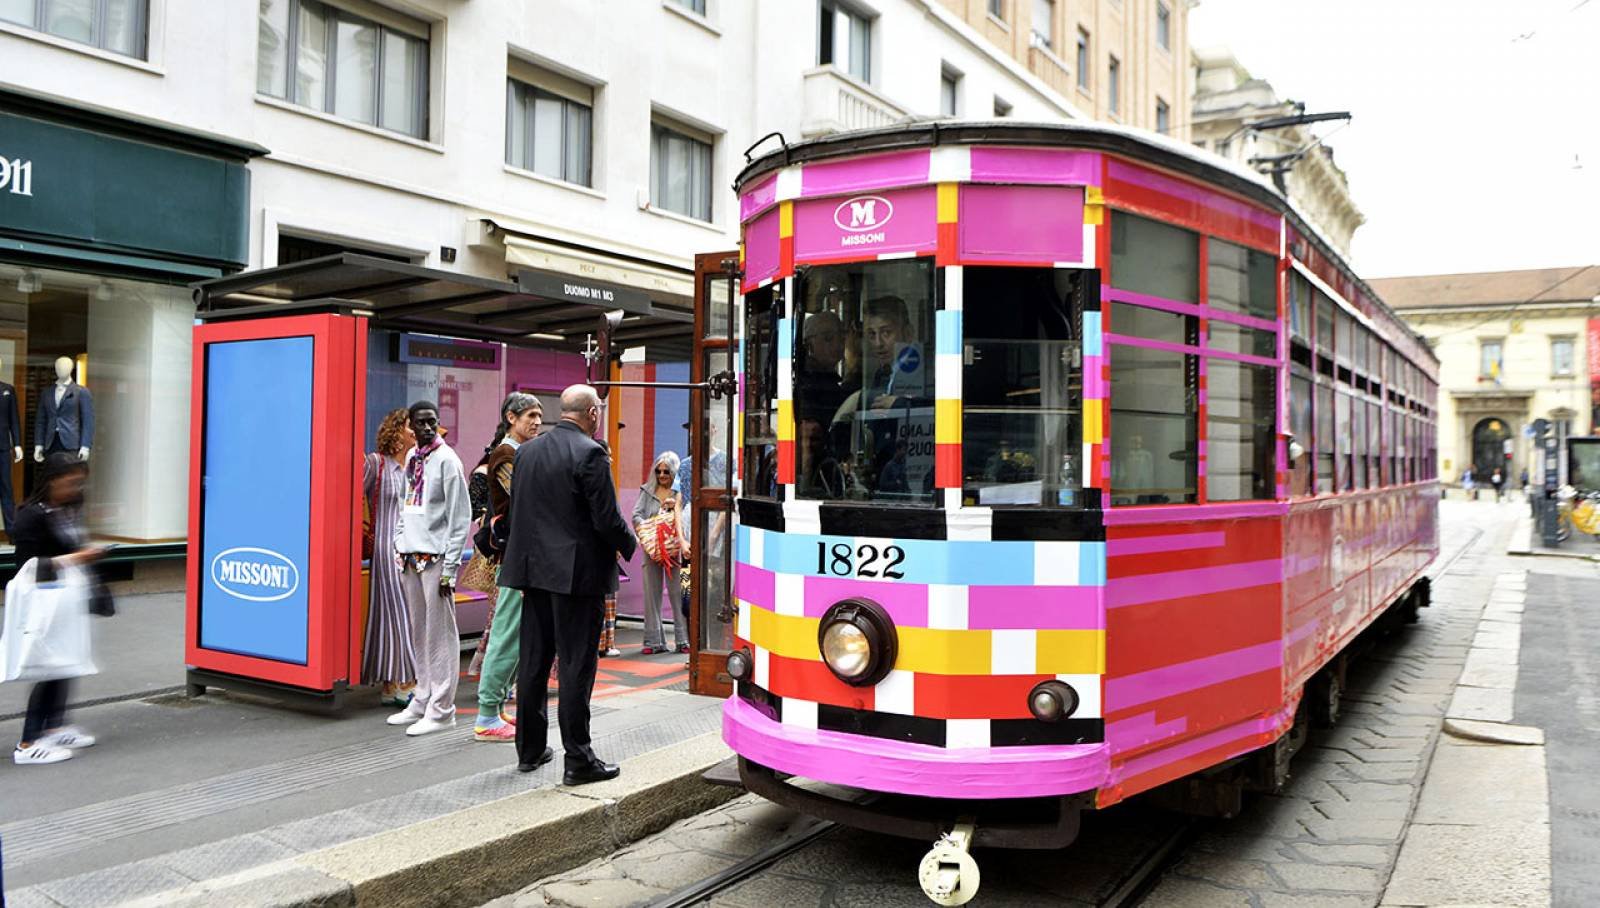 Pubblicità Out of Home IGPDecaux Tram decorato a Milano per M Missoni